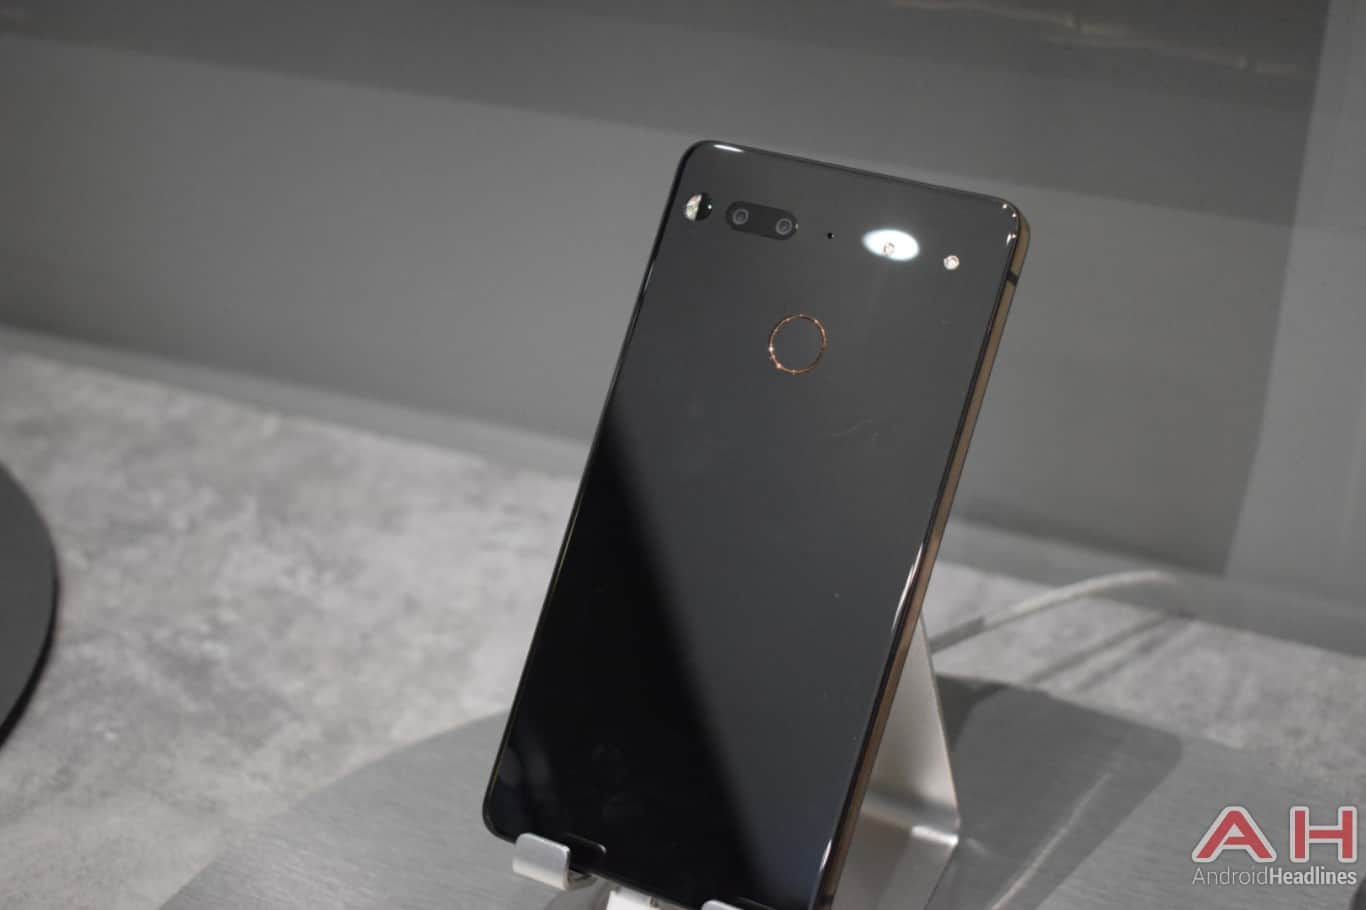 AH Essential PH 1 hands on MWC 2018 1